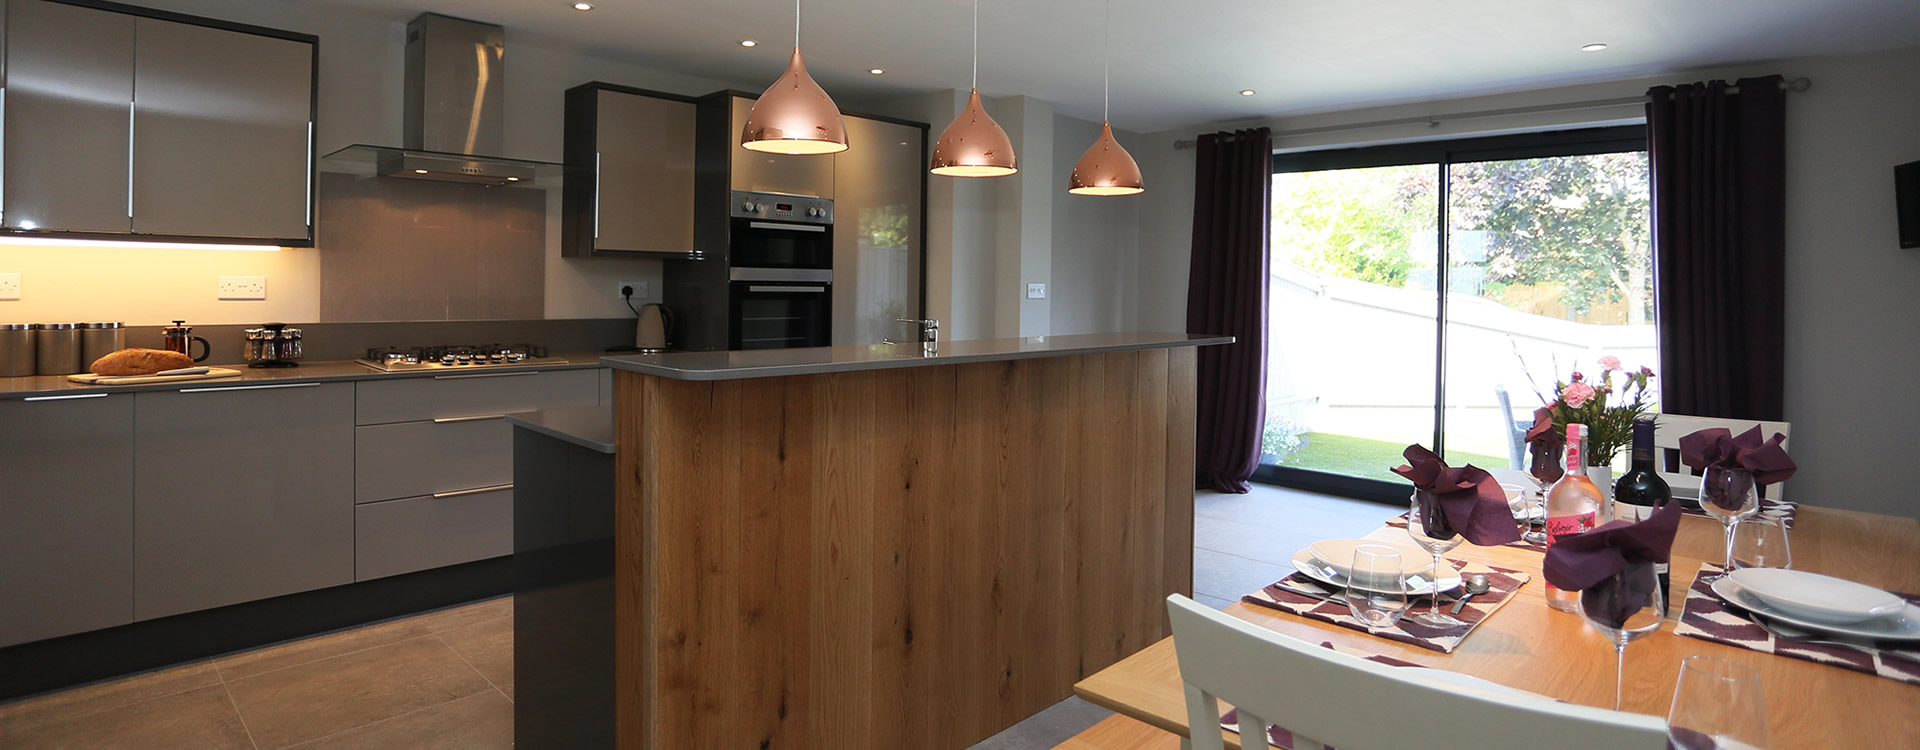 Cedar Cottage Holiday Home Brockenhurst